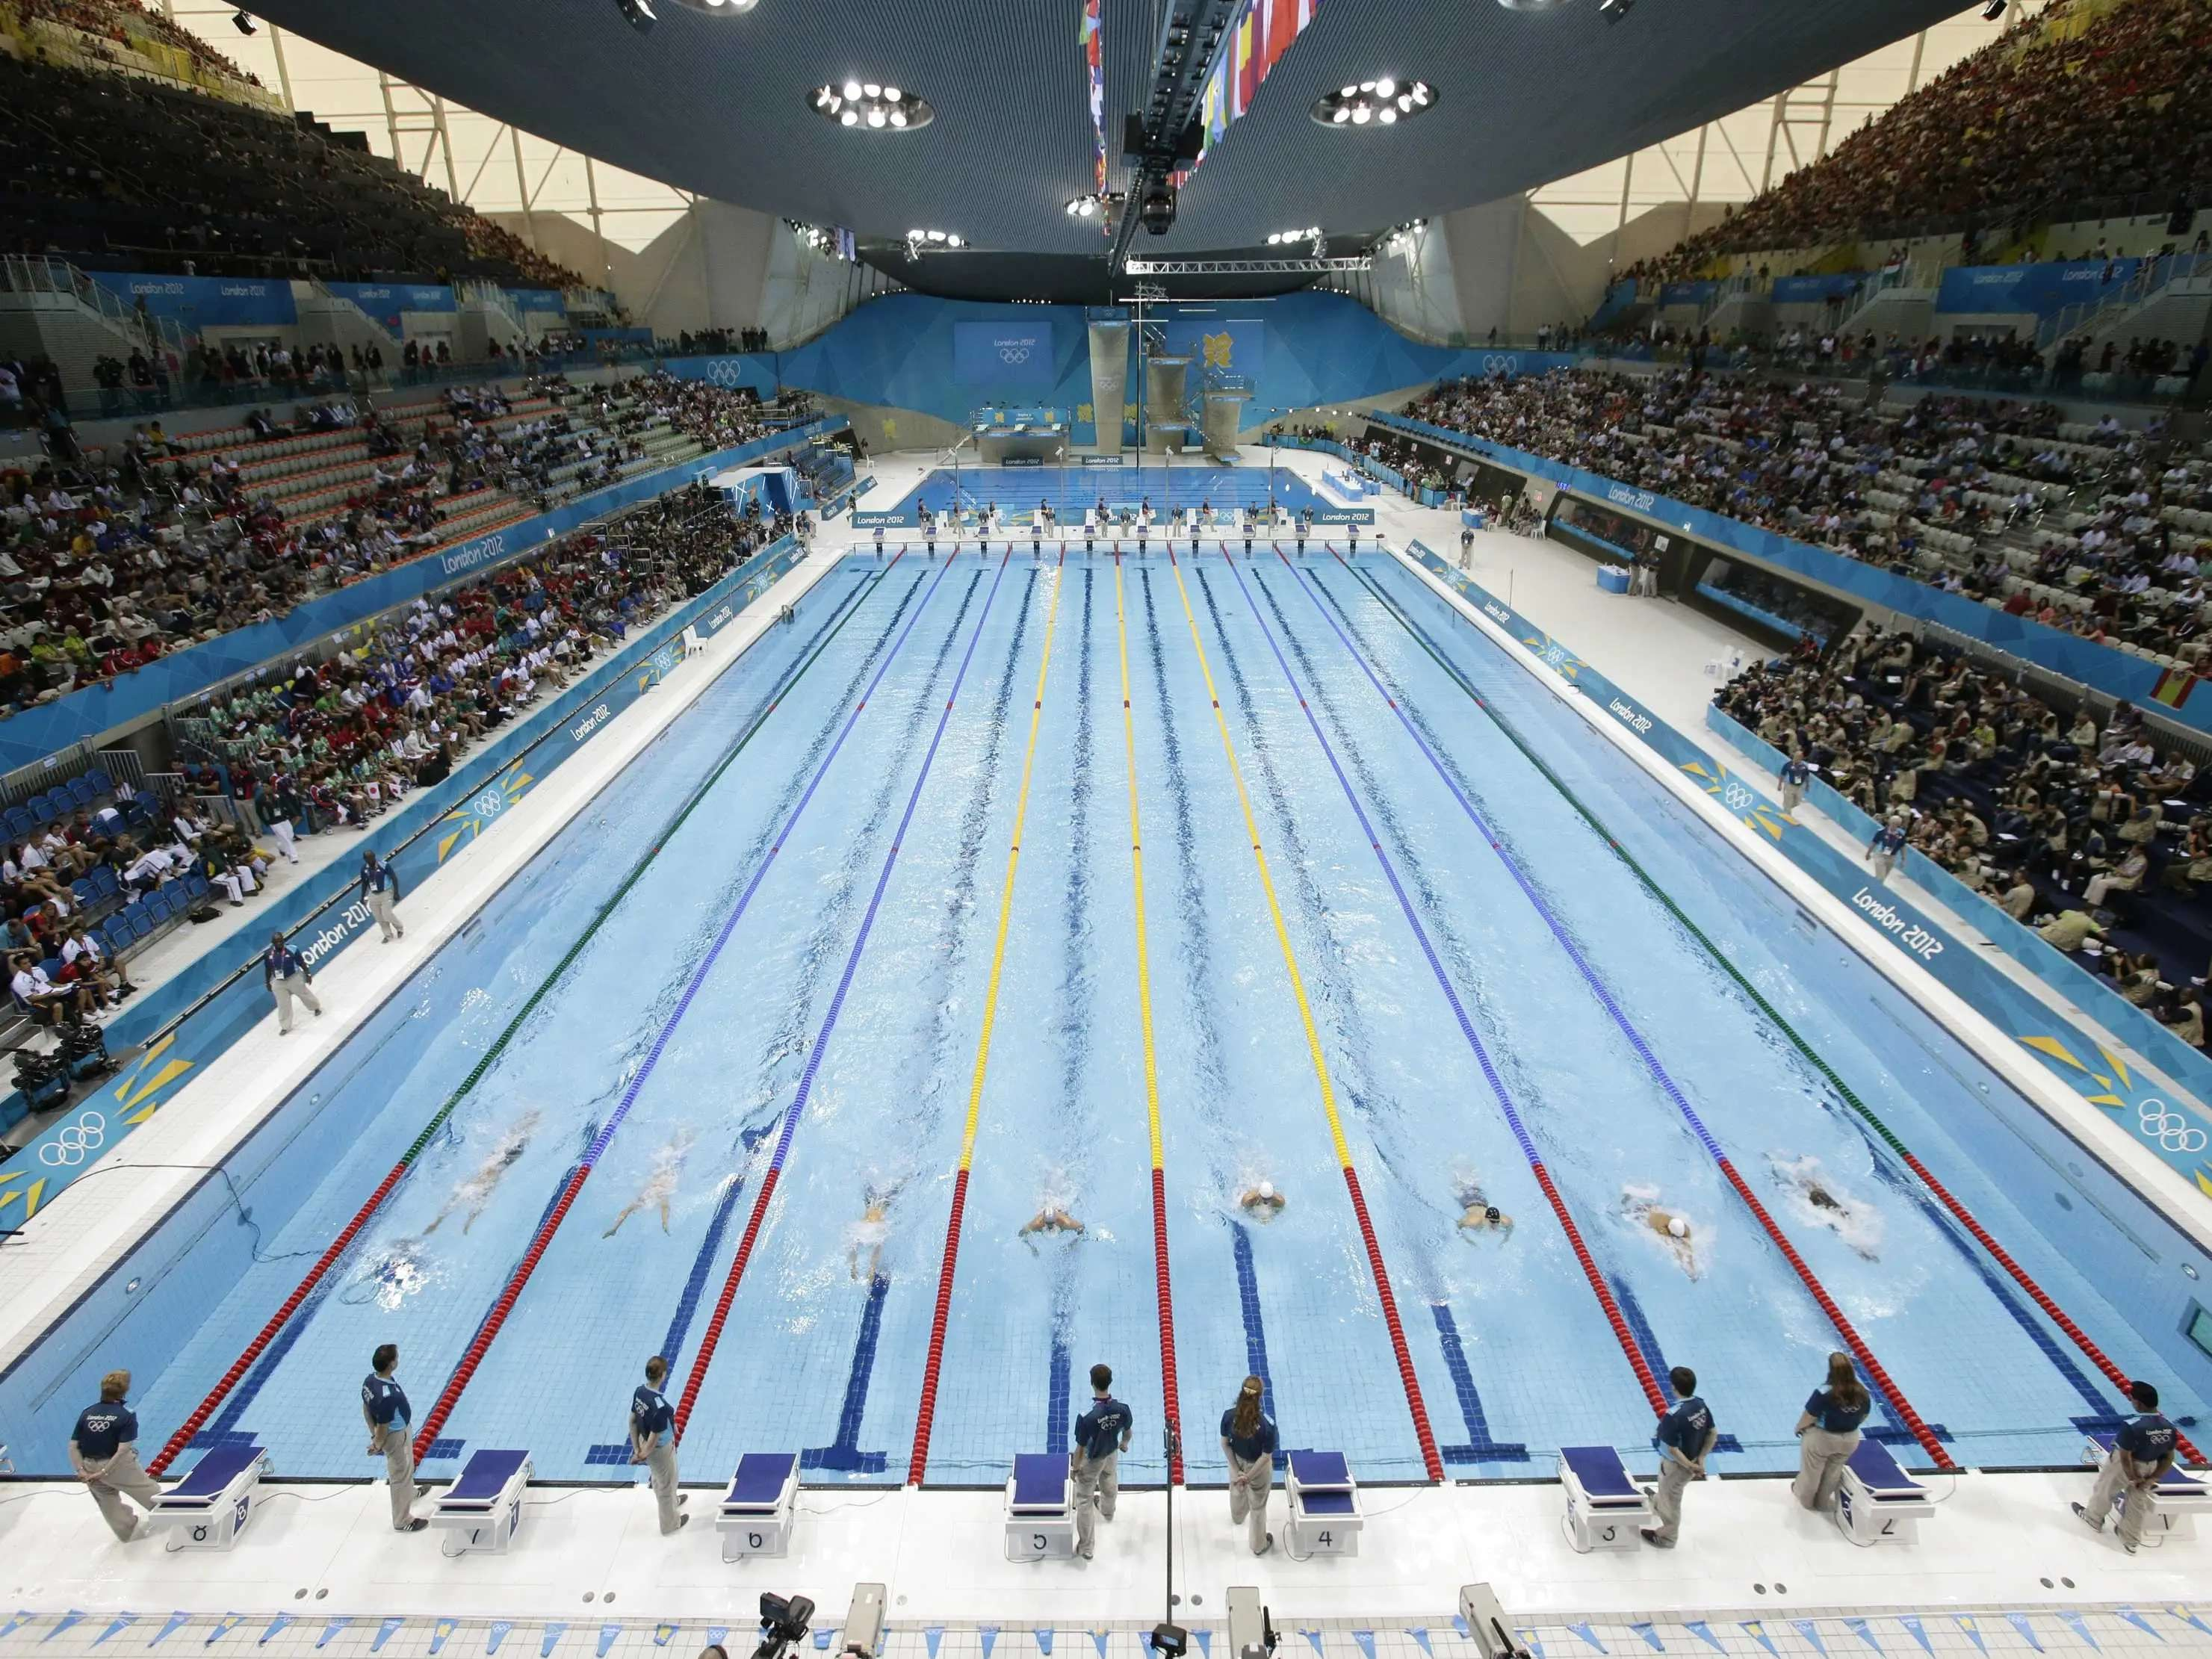 Russia's natural gas reserves are equivalent to about 13.2 billion Olympic size swimming pools.